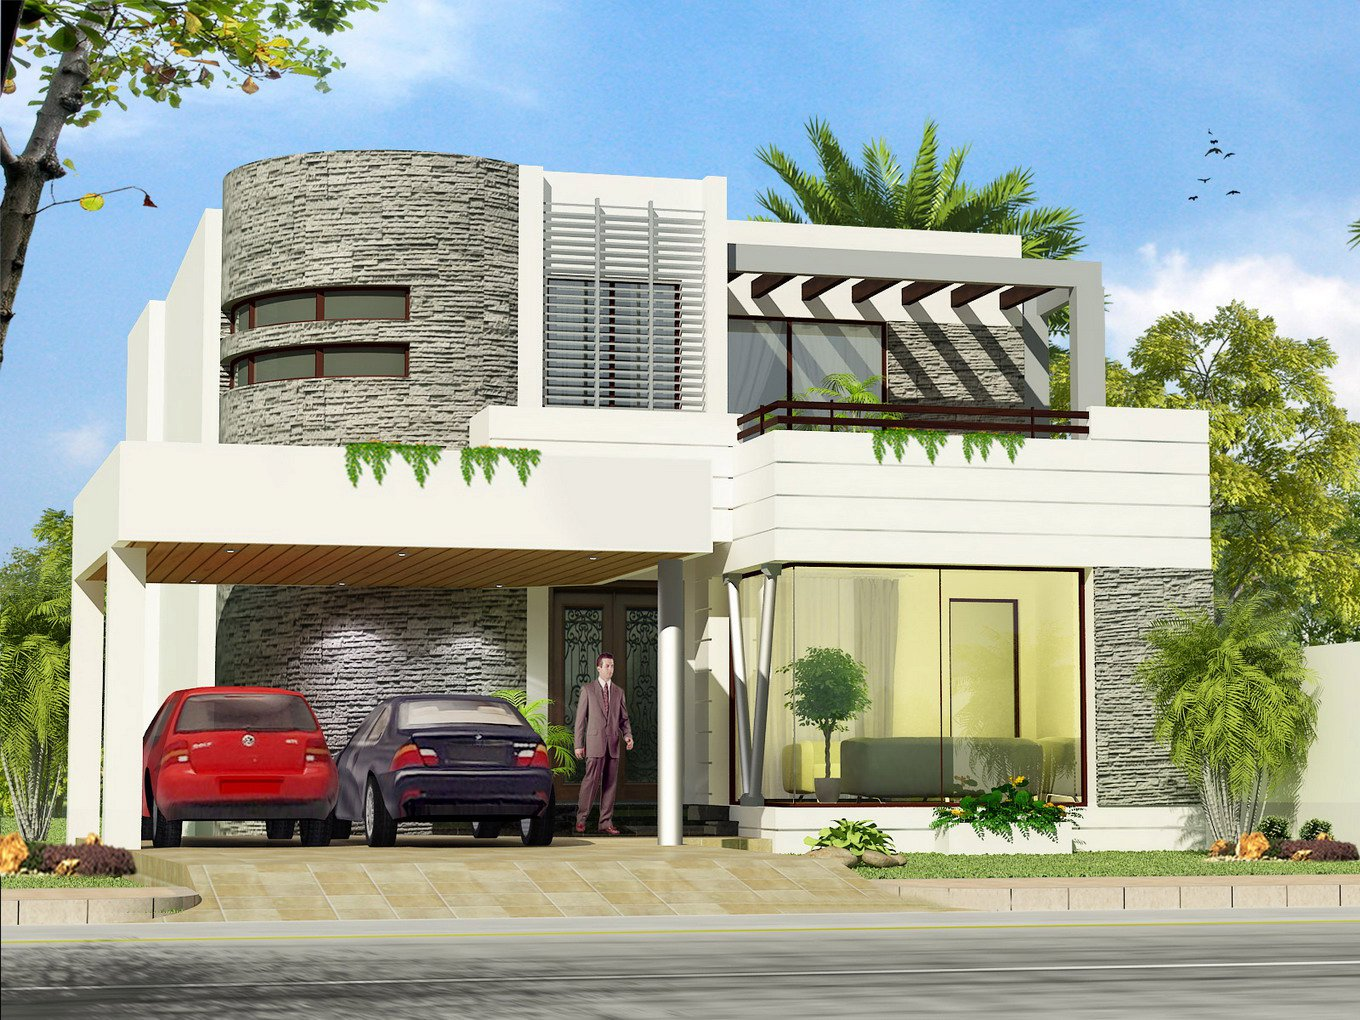 New home designs latest modern homes beautiful latest Home exterior front design